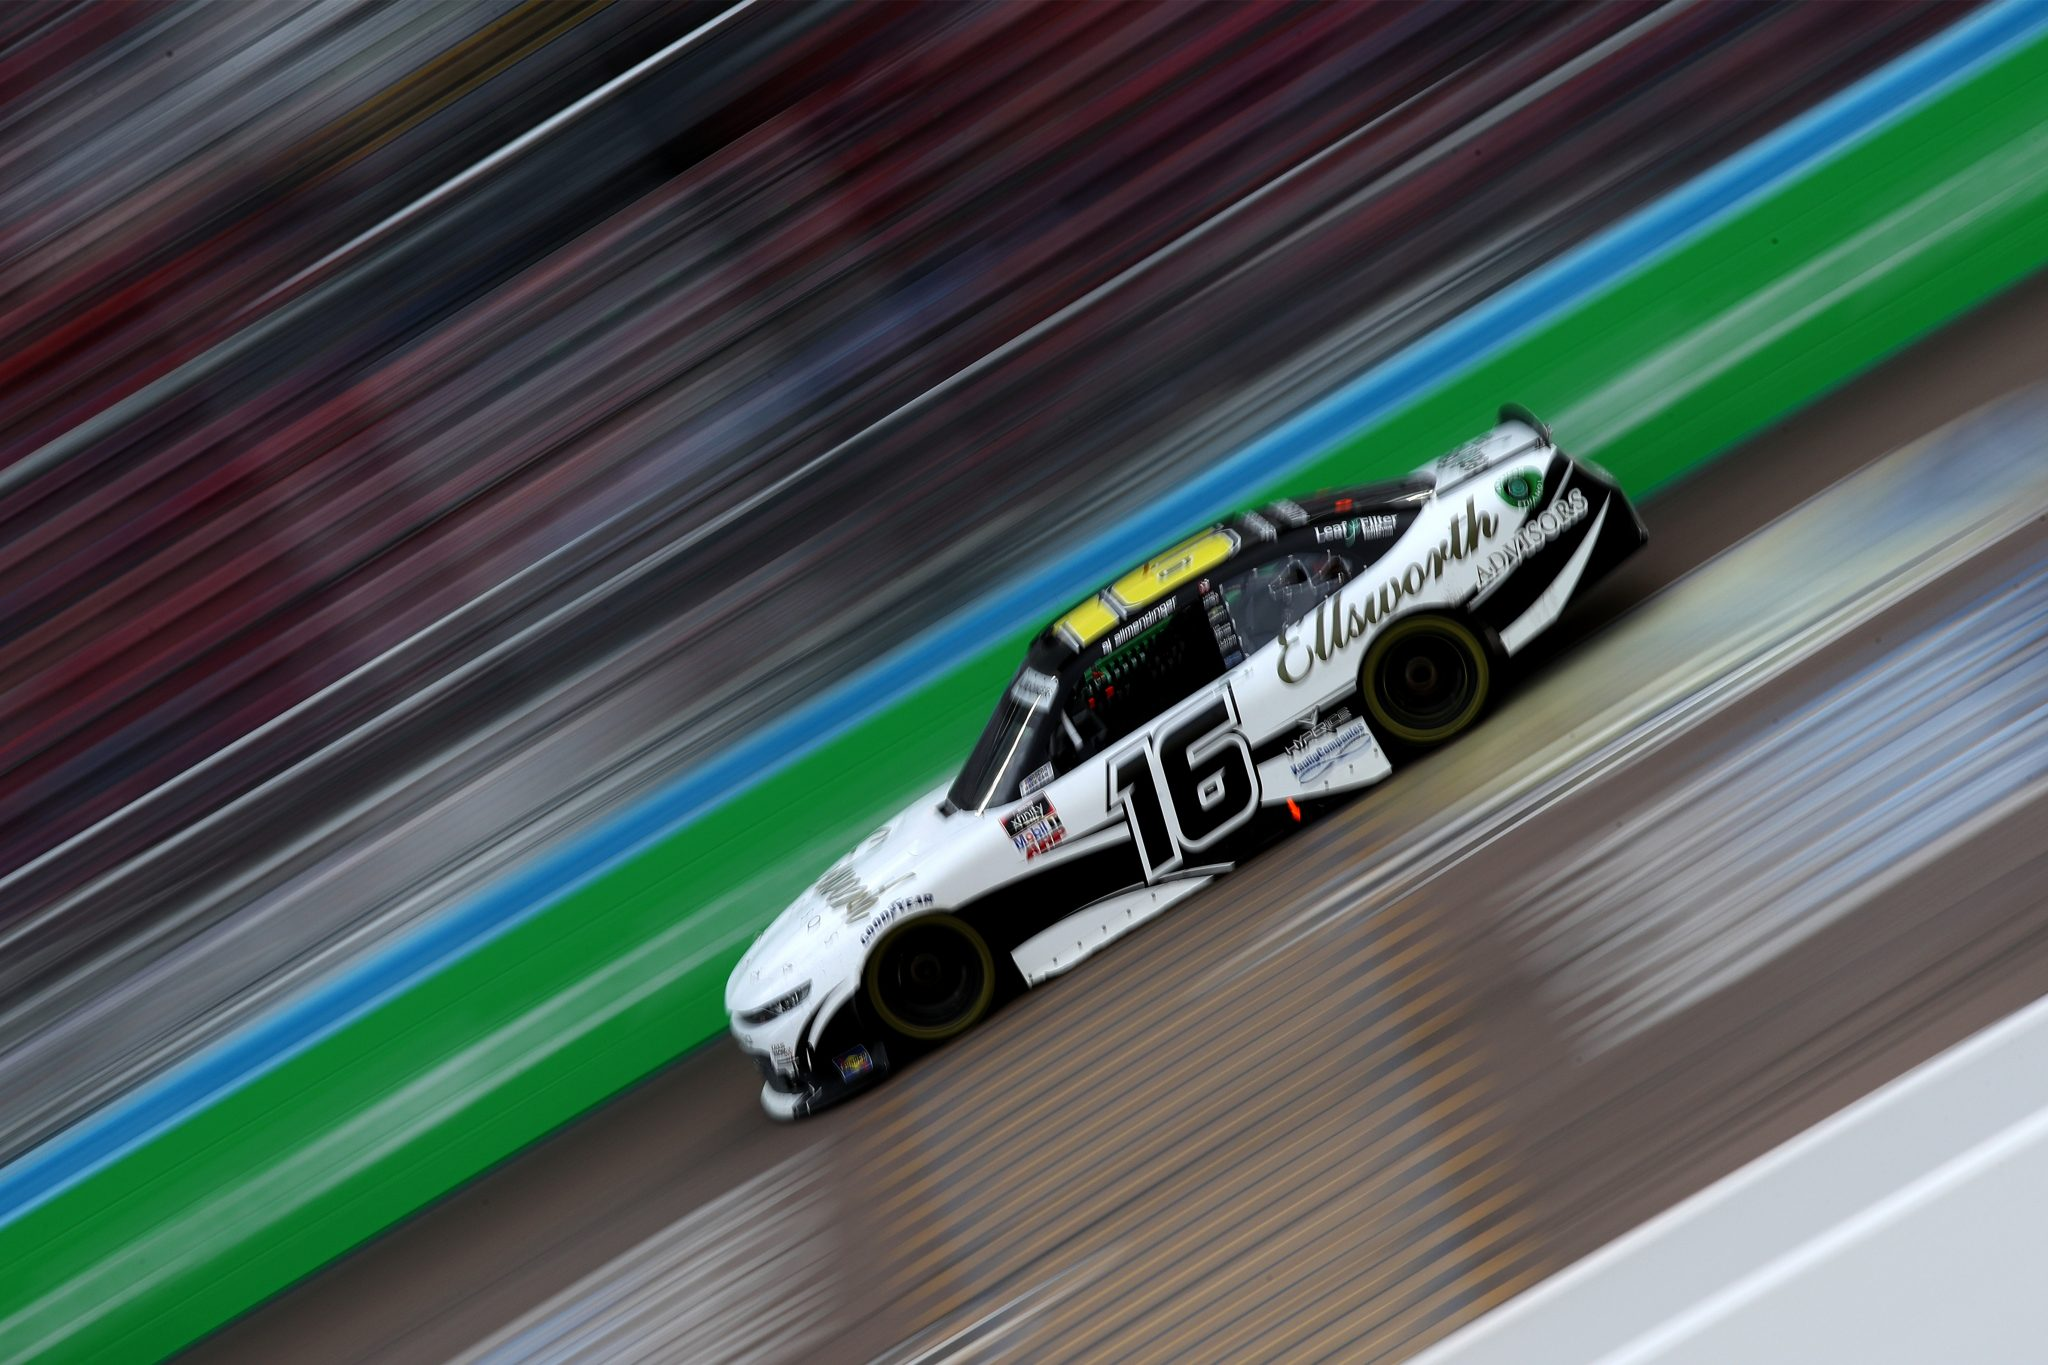 AVONDALE, ARIZONA - MARCH 13: AJ Allmendinger, driver of the #16 Ellsworth Advisors Chevrolet, drives during the NASCAR Xfinity Series Call 811 Before You Dig 200 presented by Arizona 811 at Phoenix Raceway on March 13, 2021 in Avondale, Arizona. (Photo by Sean Gardner/Getty Images) | Getty Images